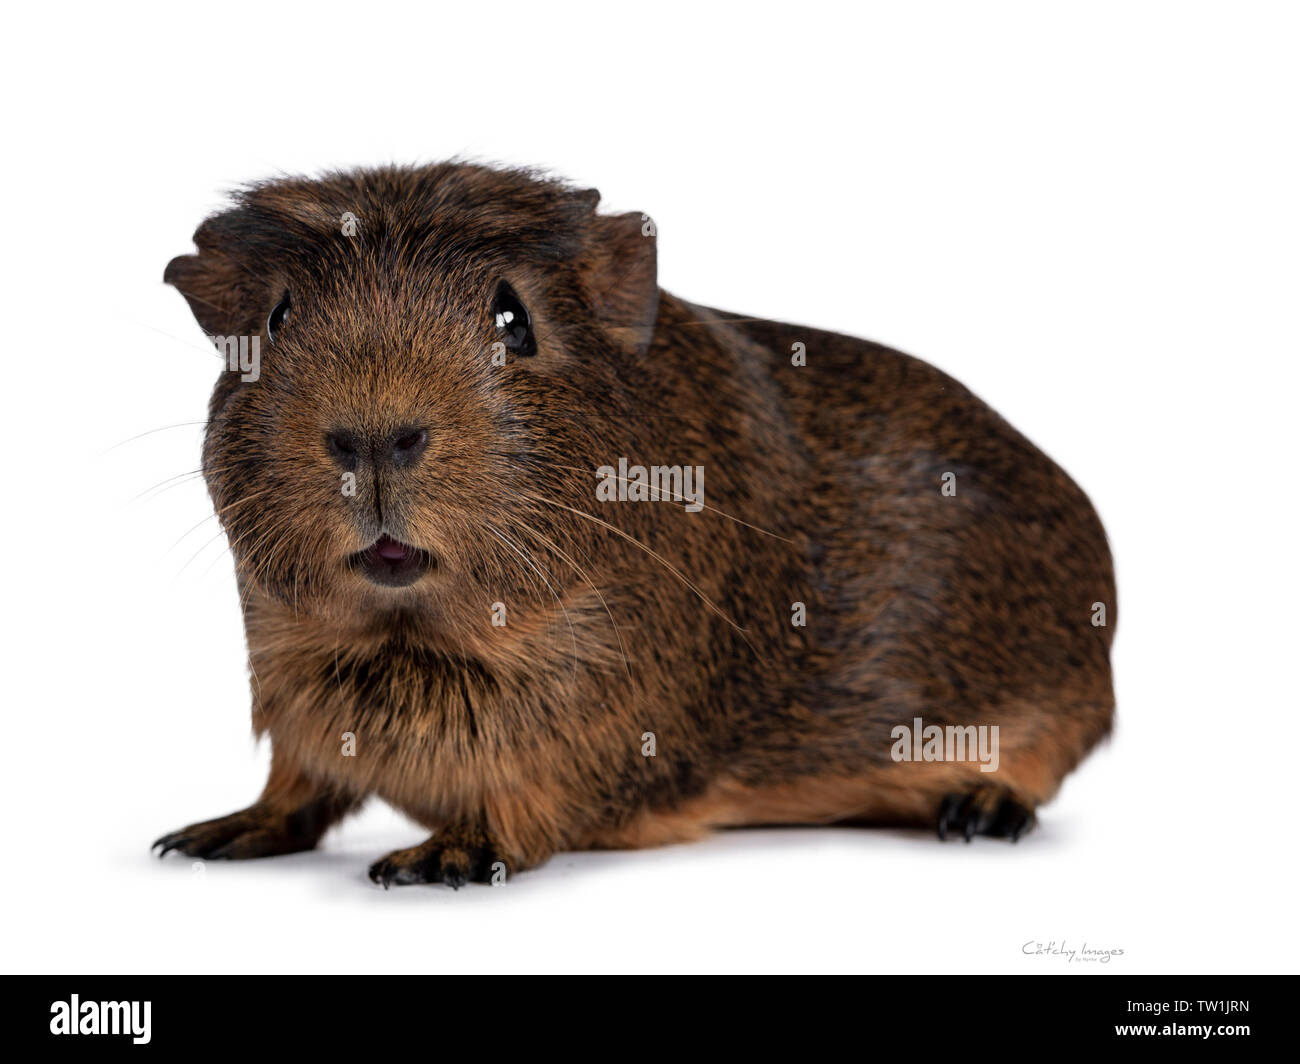 Cute crested cavy, standing side ways. Looking towards camera. Isolated on white background. Mouth silly open. - Stock Image